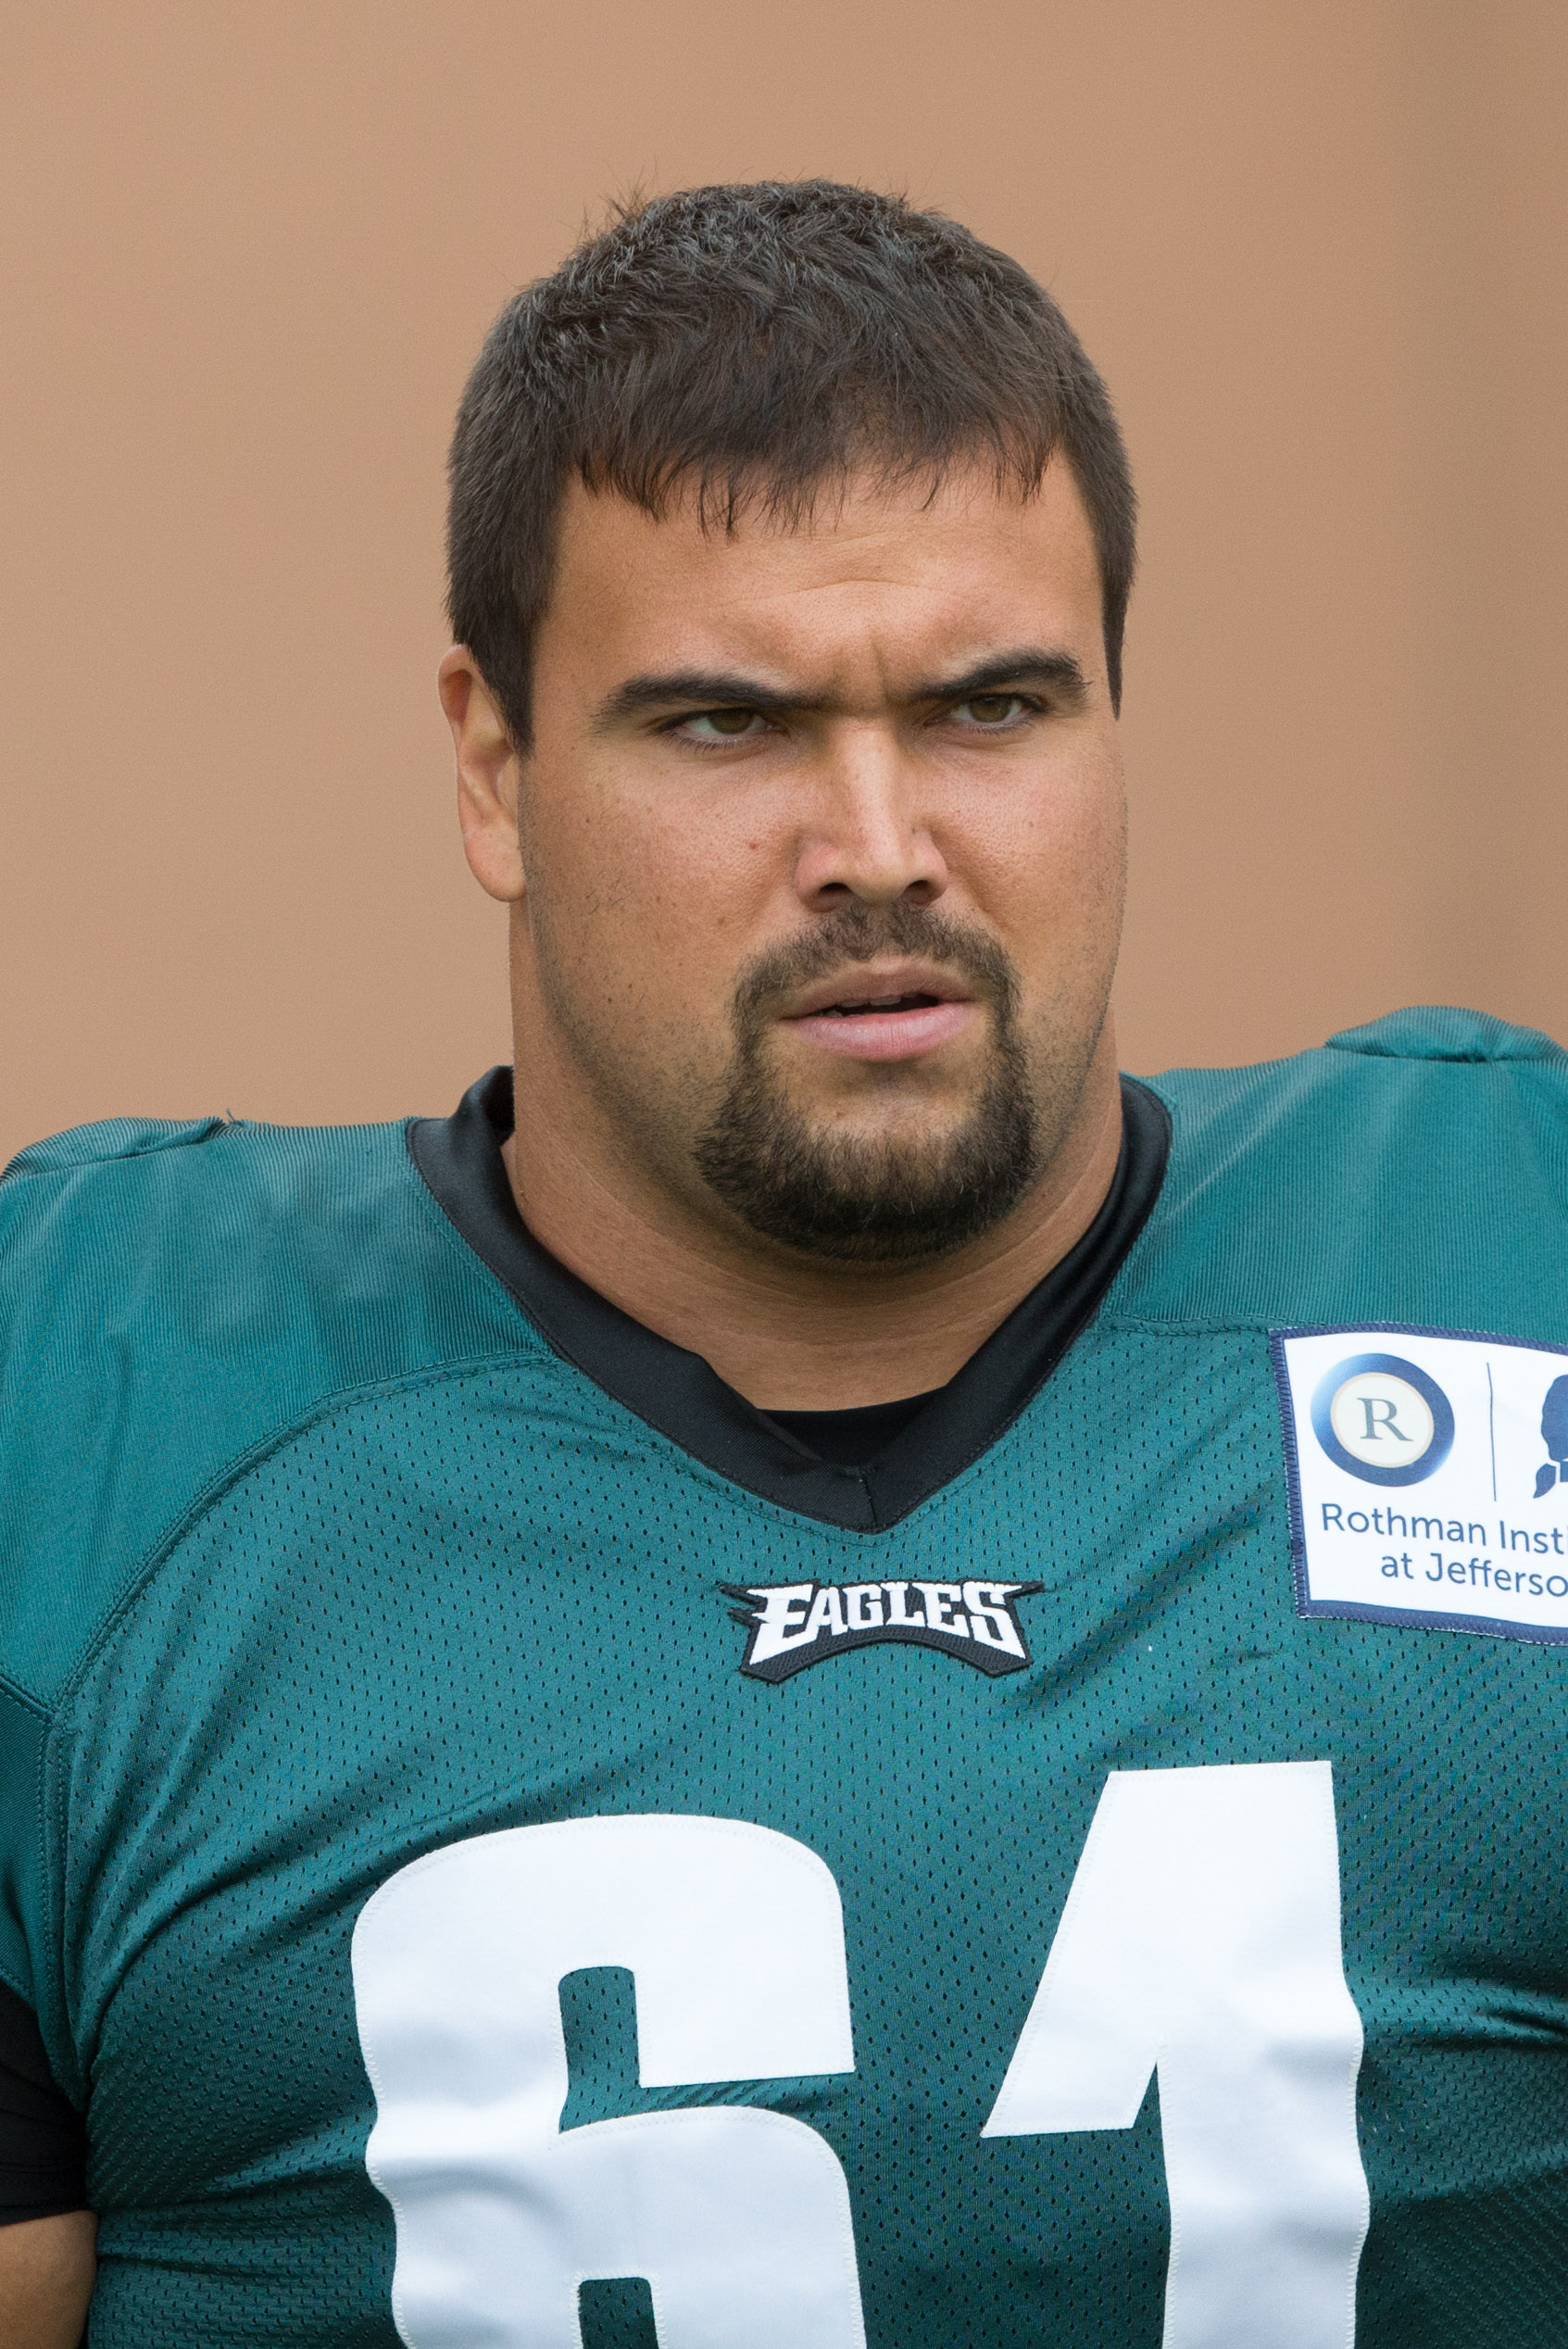 b1859e023a8 The Eagles have re-signed center/guard Stefen Wisniewski, according to an  announcement from the player's Twitter account. Terms of the deal are not  yet ...